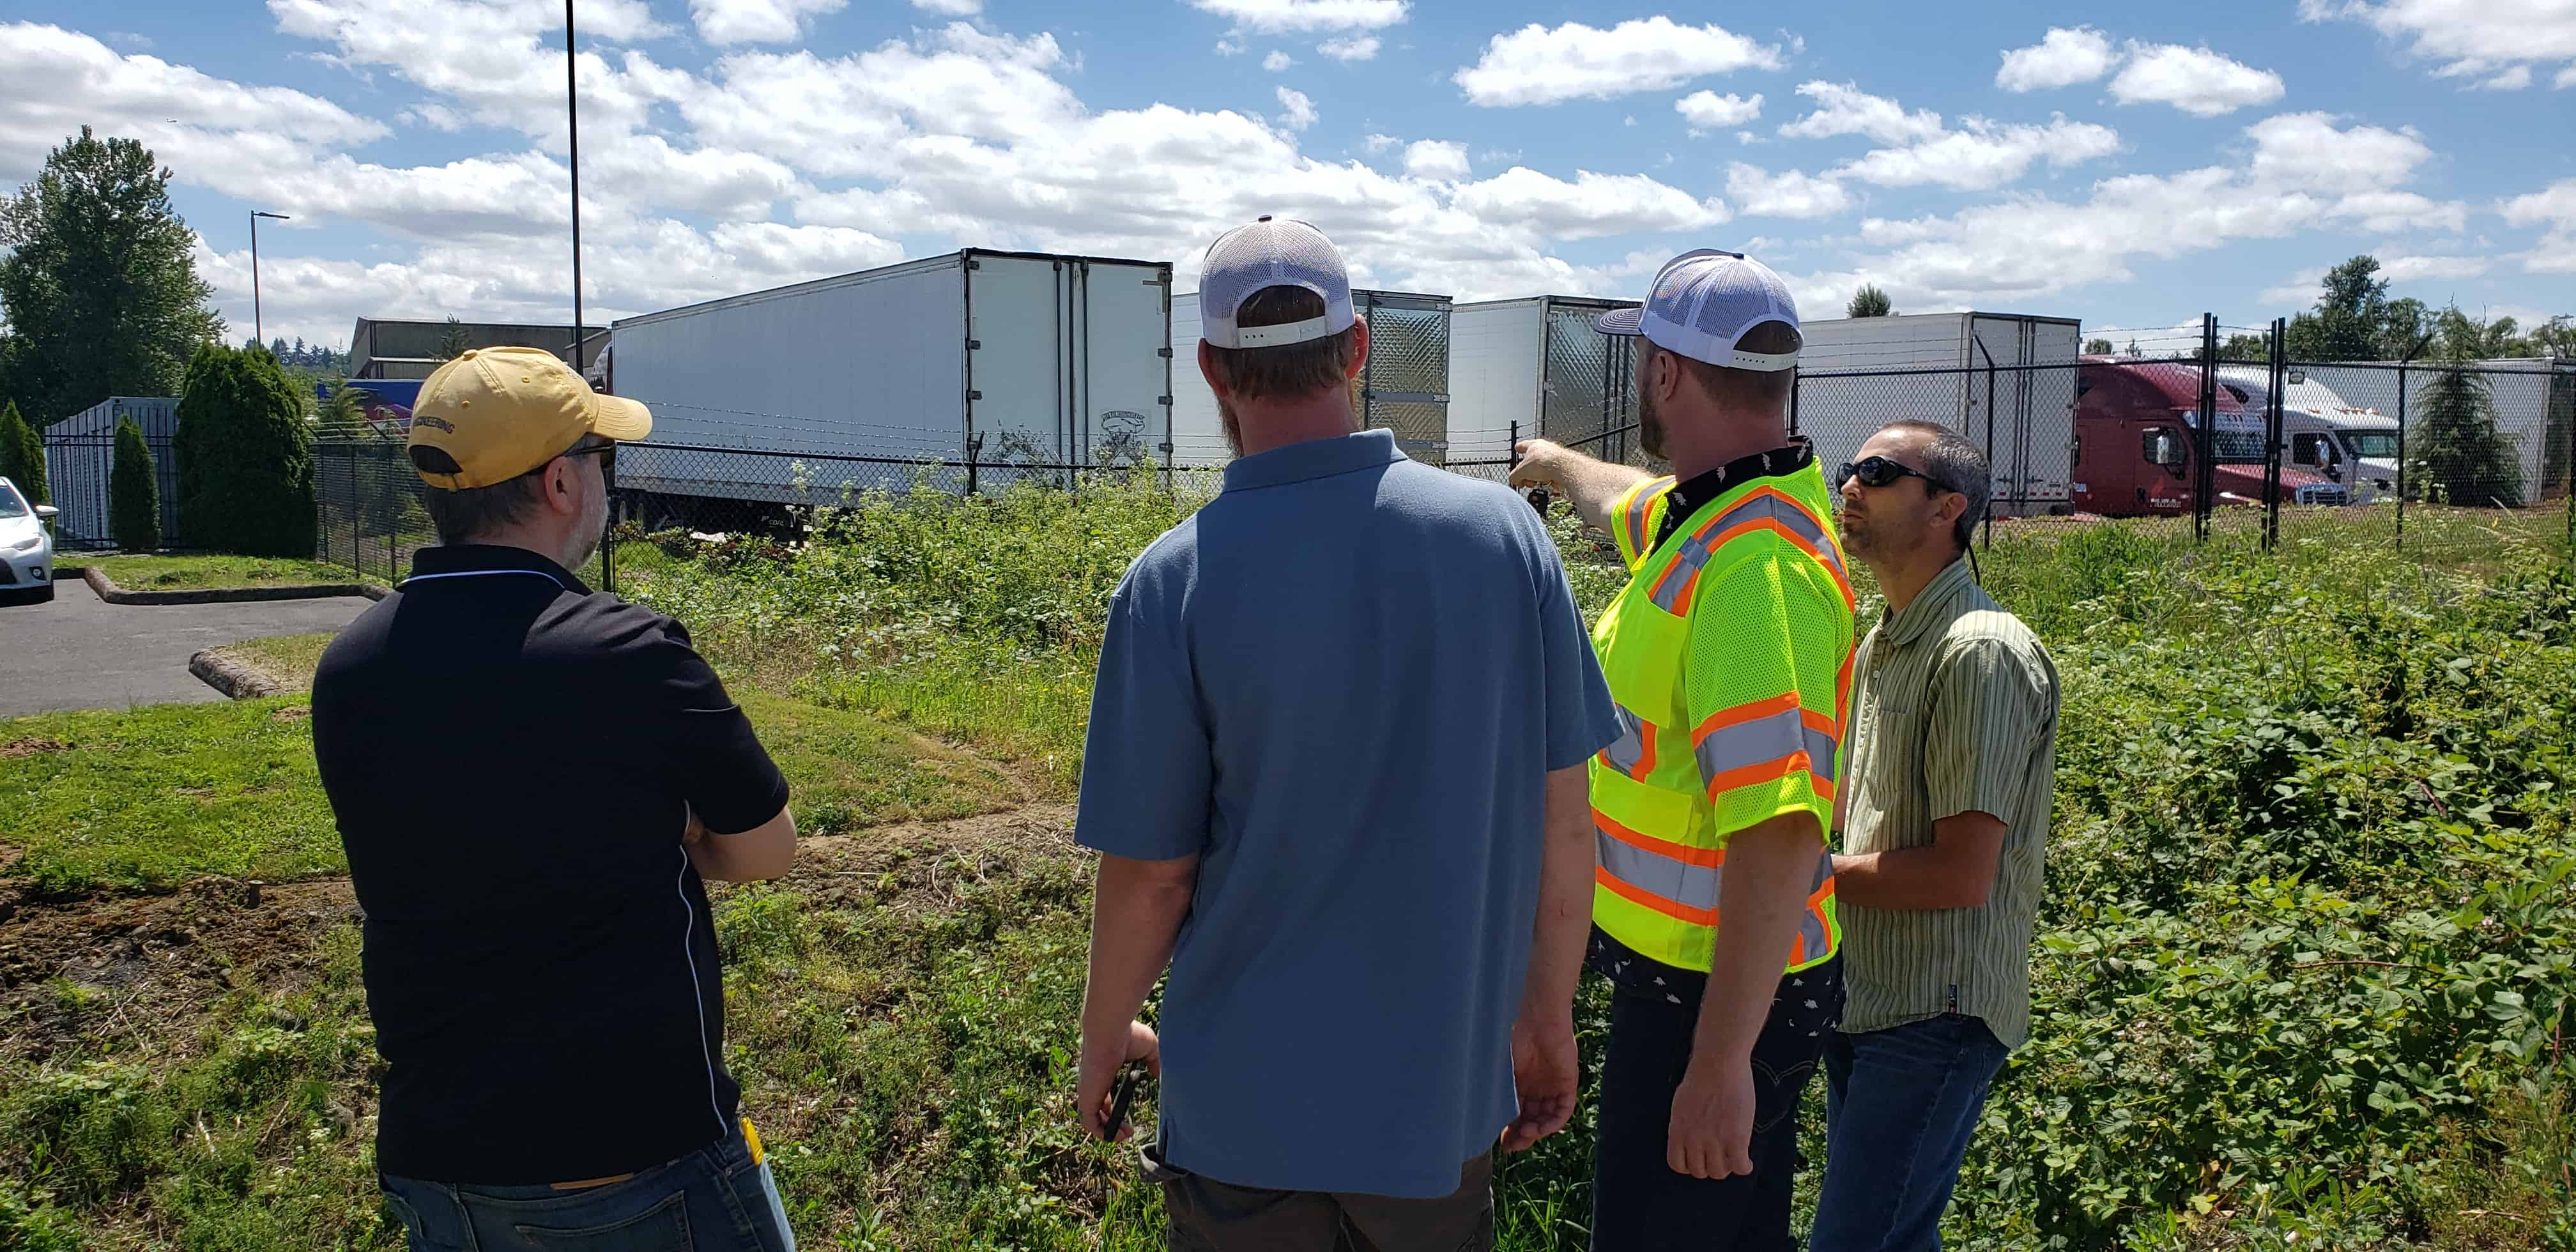 Project managers conduct site visit in preparation for SDIC Drainage Master Plan kick-off